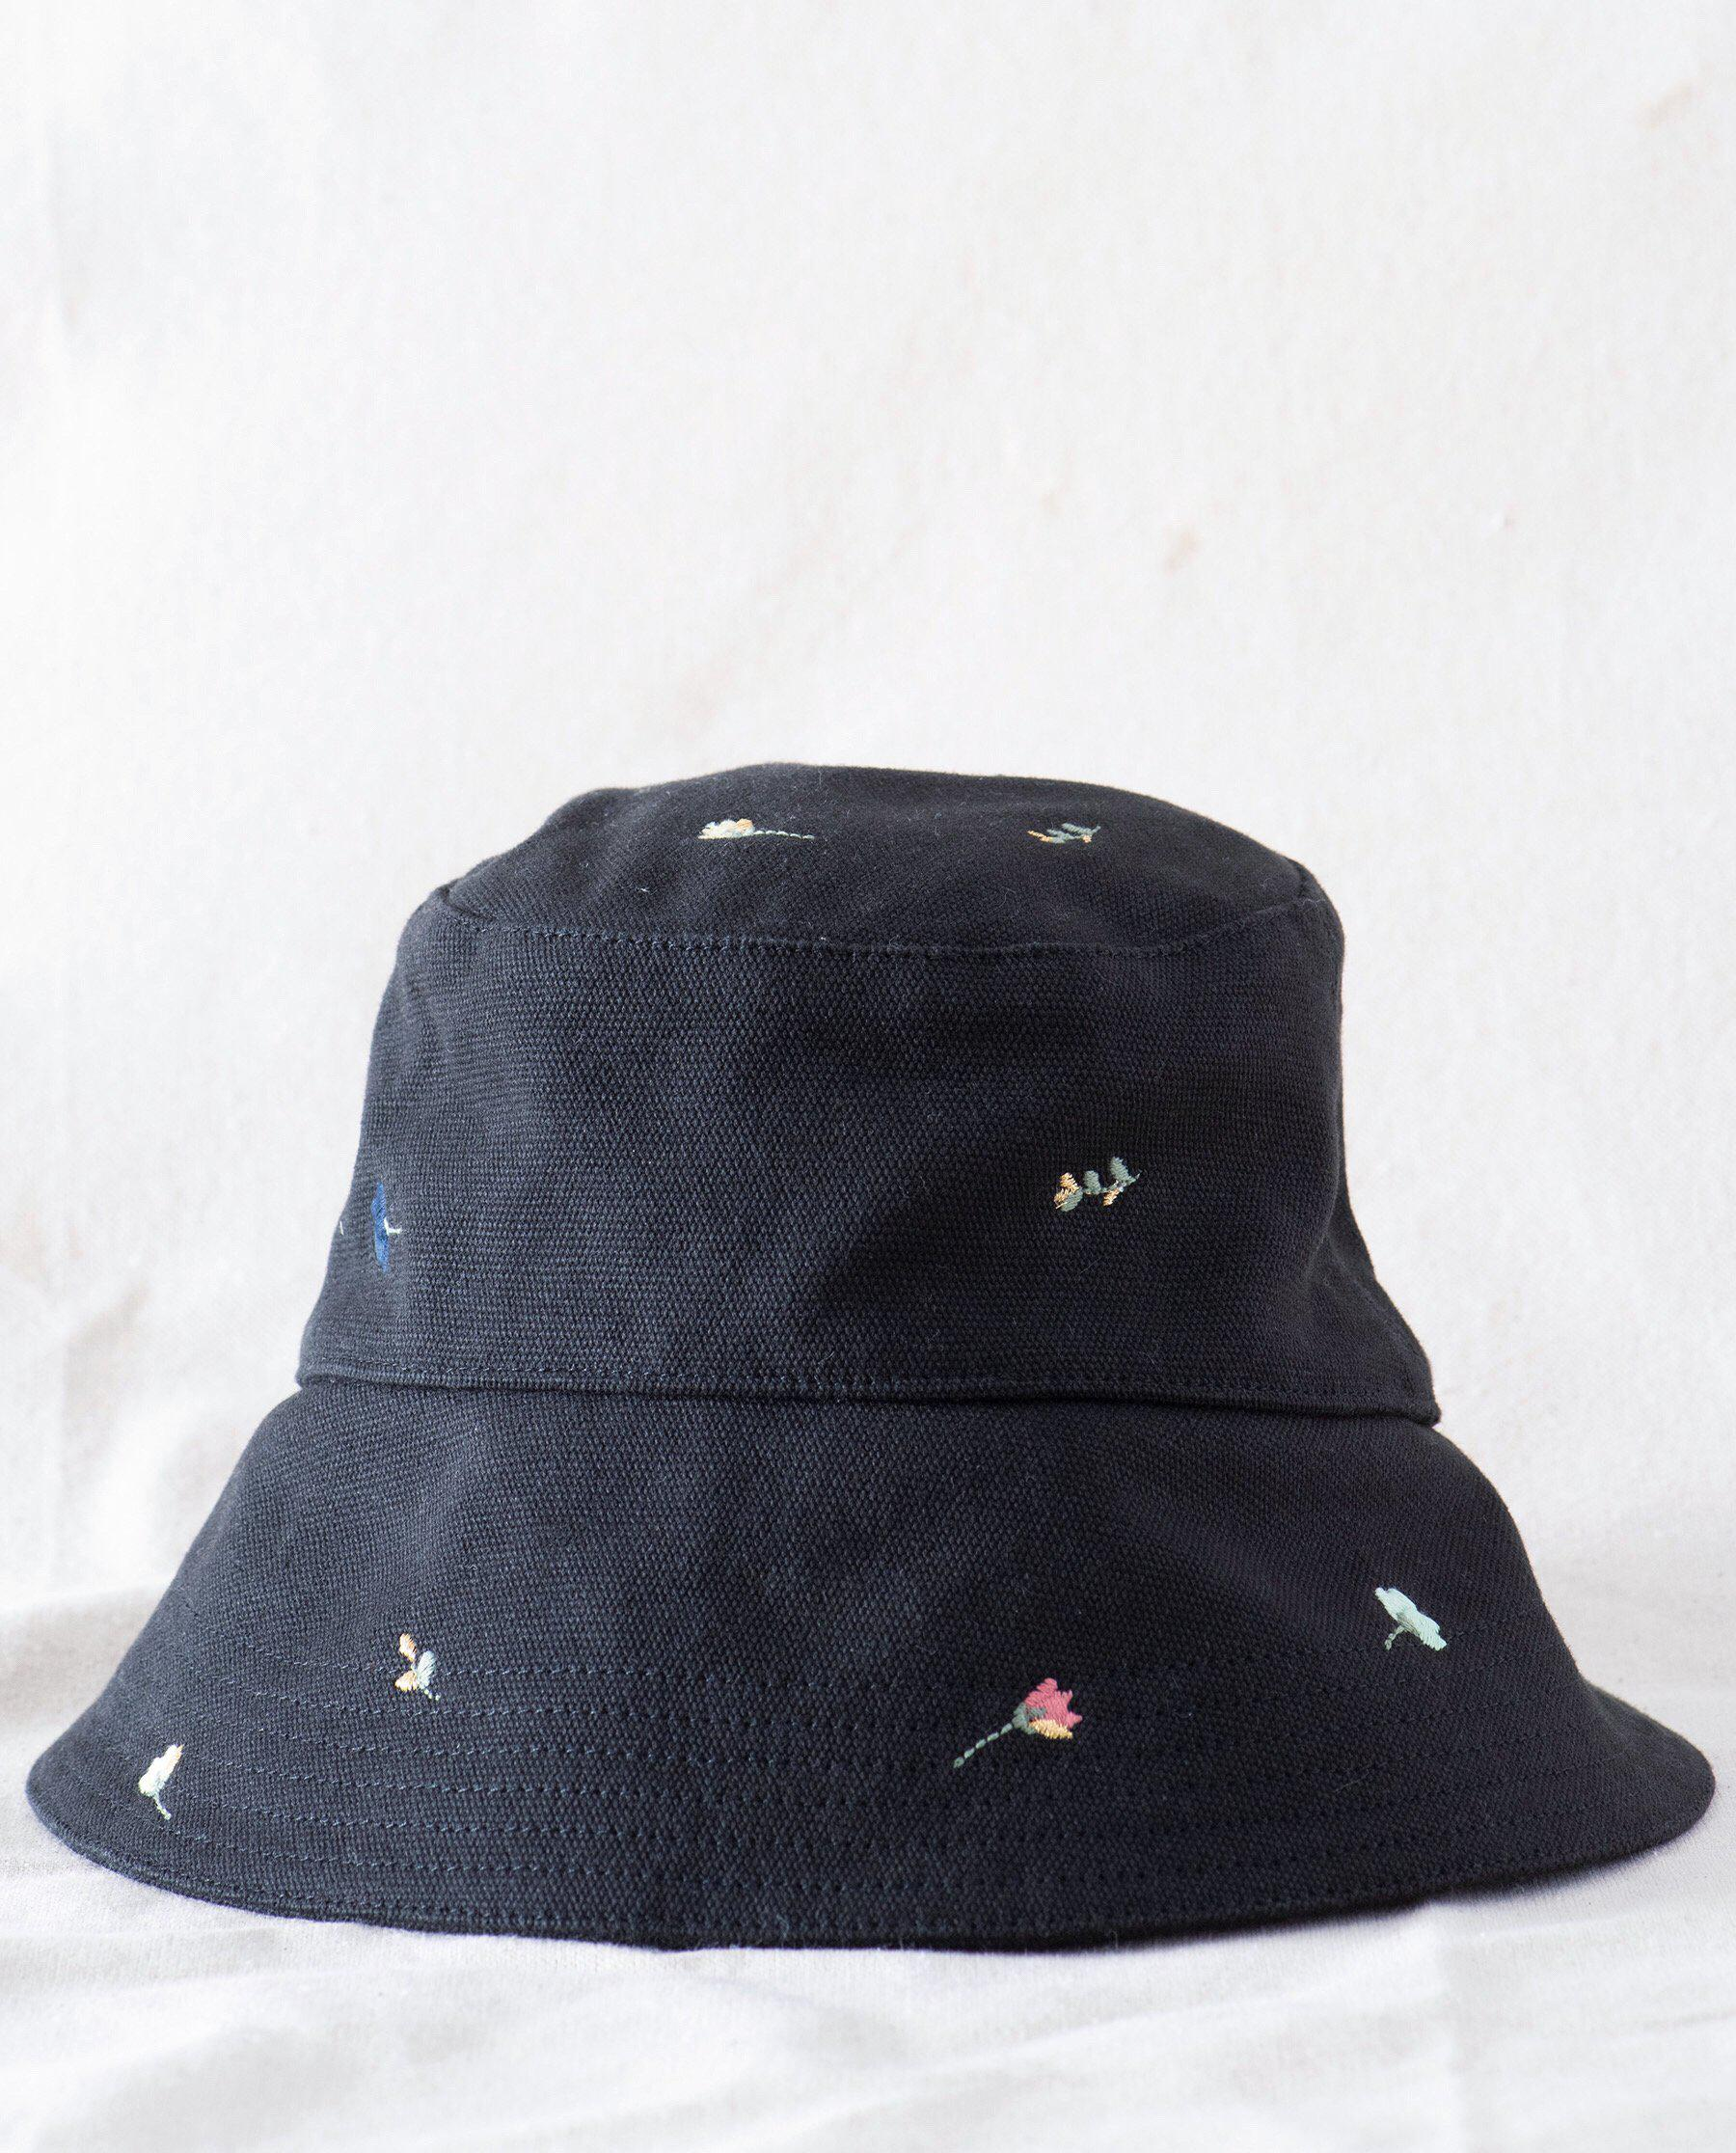 The Bucket Hat. -- Washed Black with Tossed Floral Embroidery